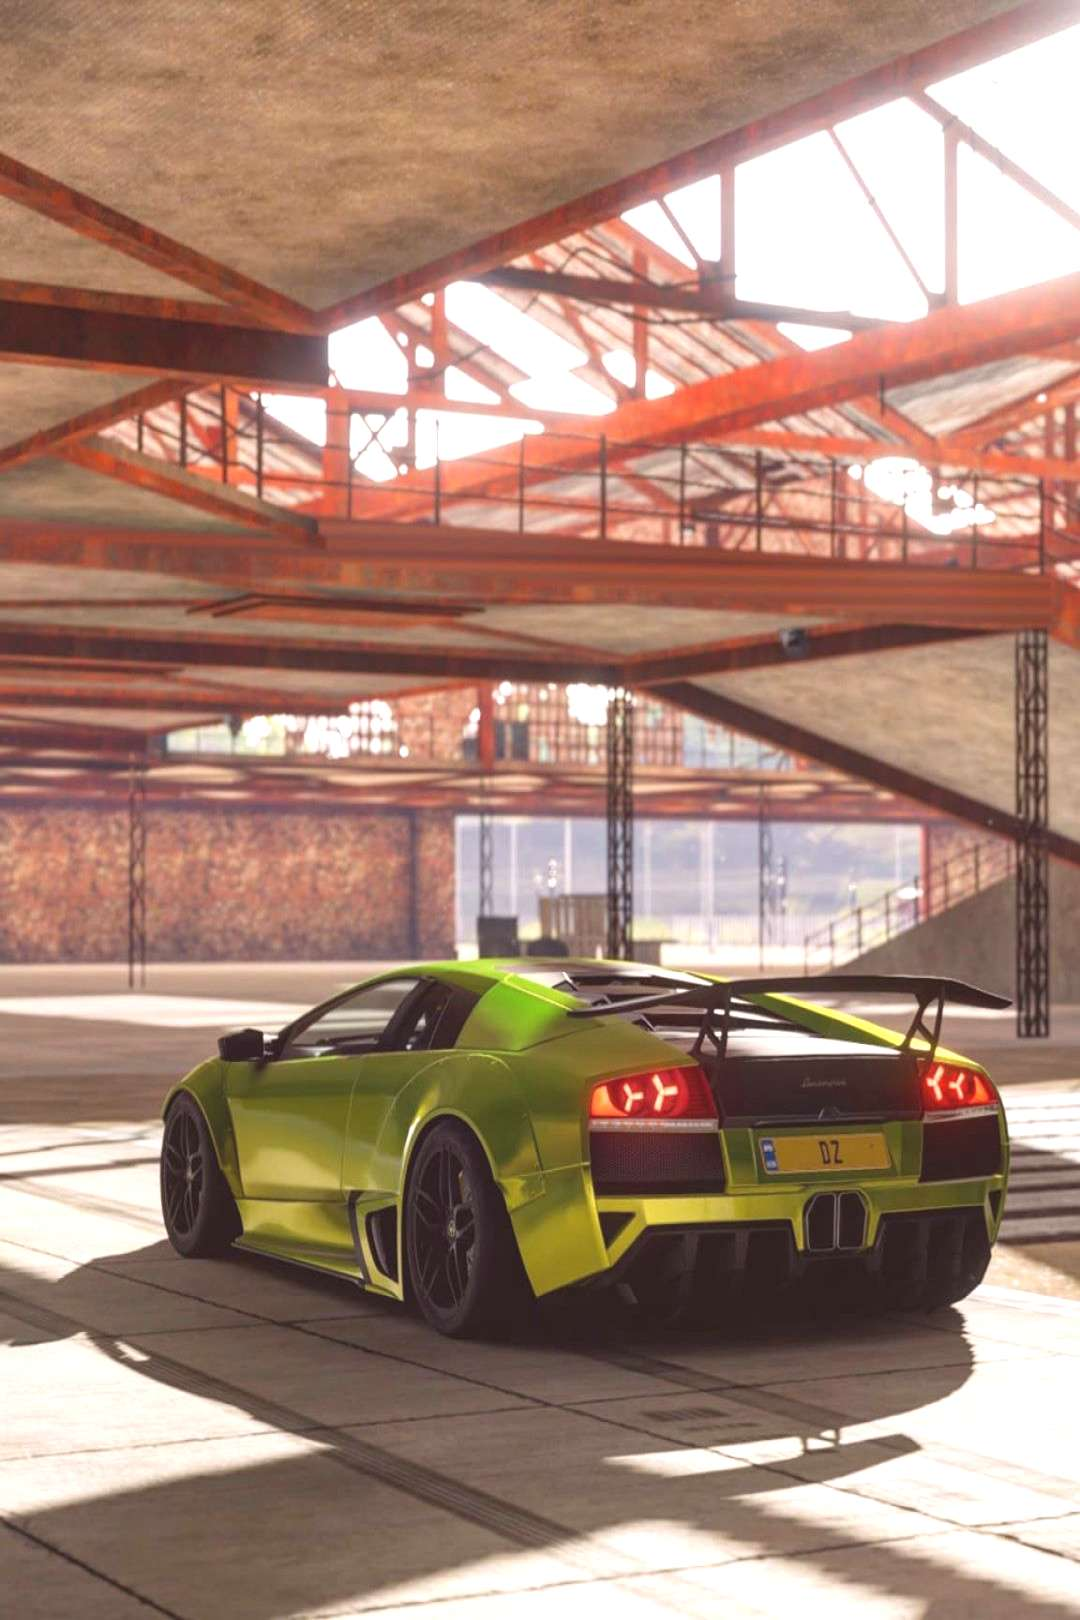 Forza Screenies Photography on April 20 2020 car and outdoor